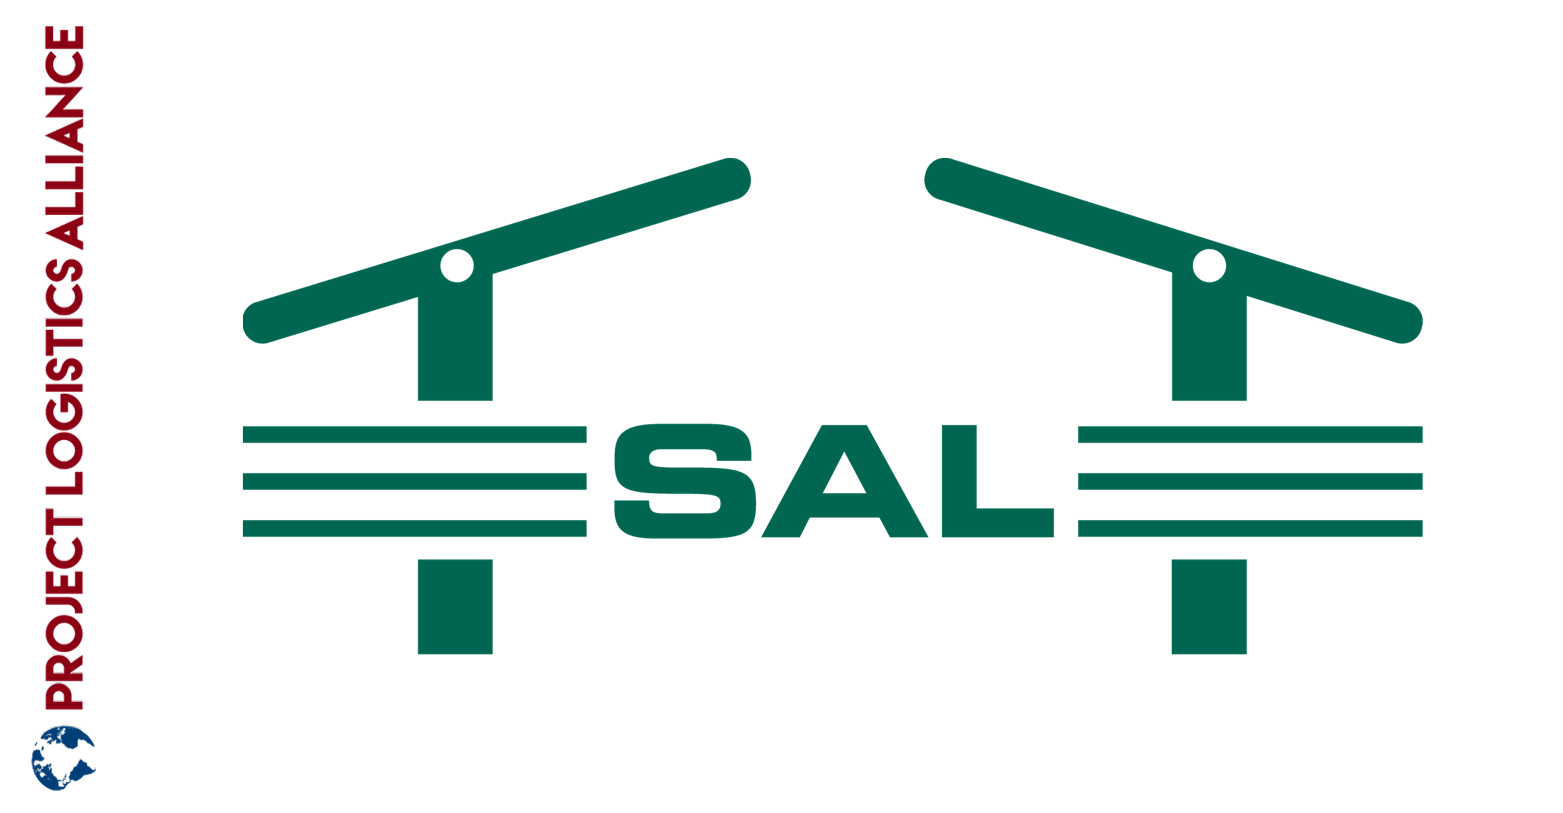 SAL Acquires Major Stake In Intermarine And Expands Its Business In The Americas